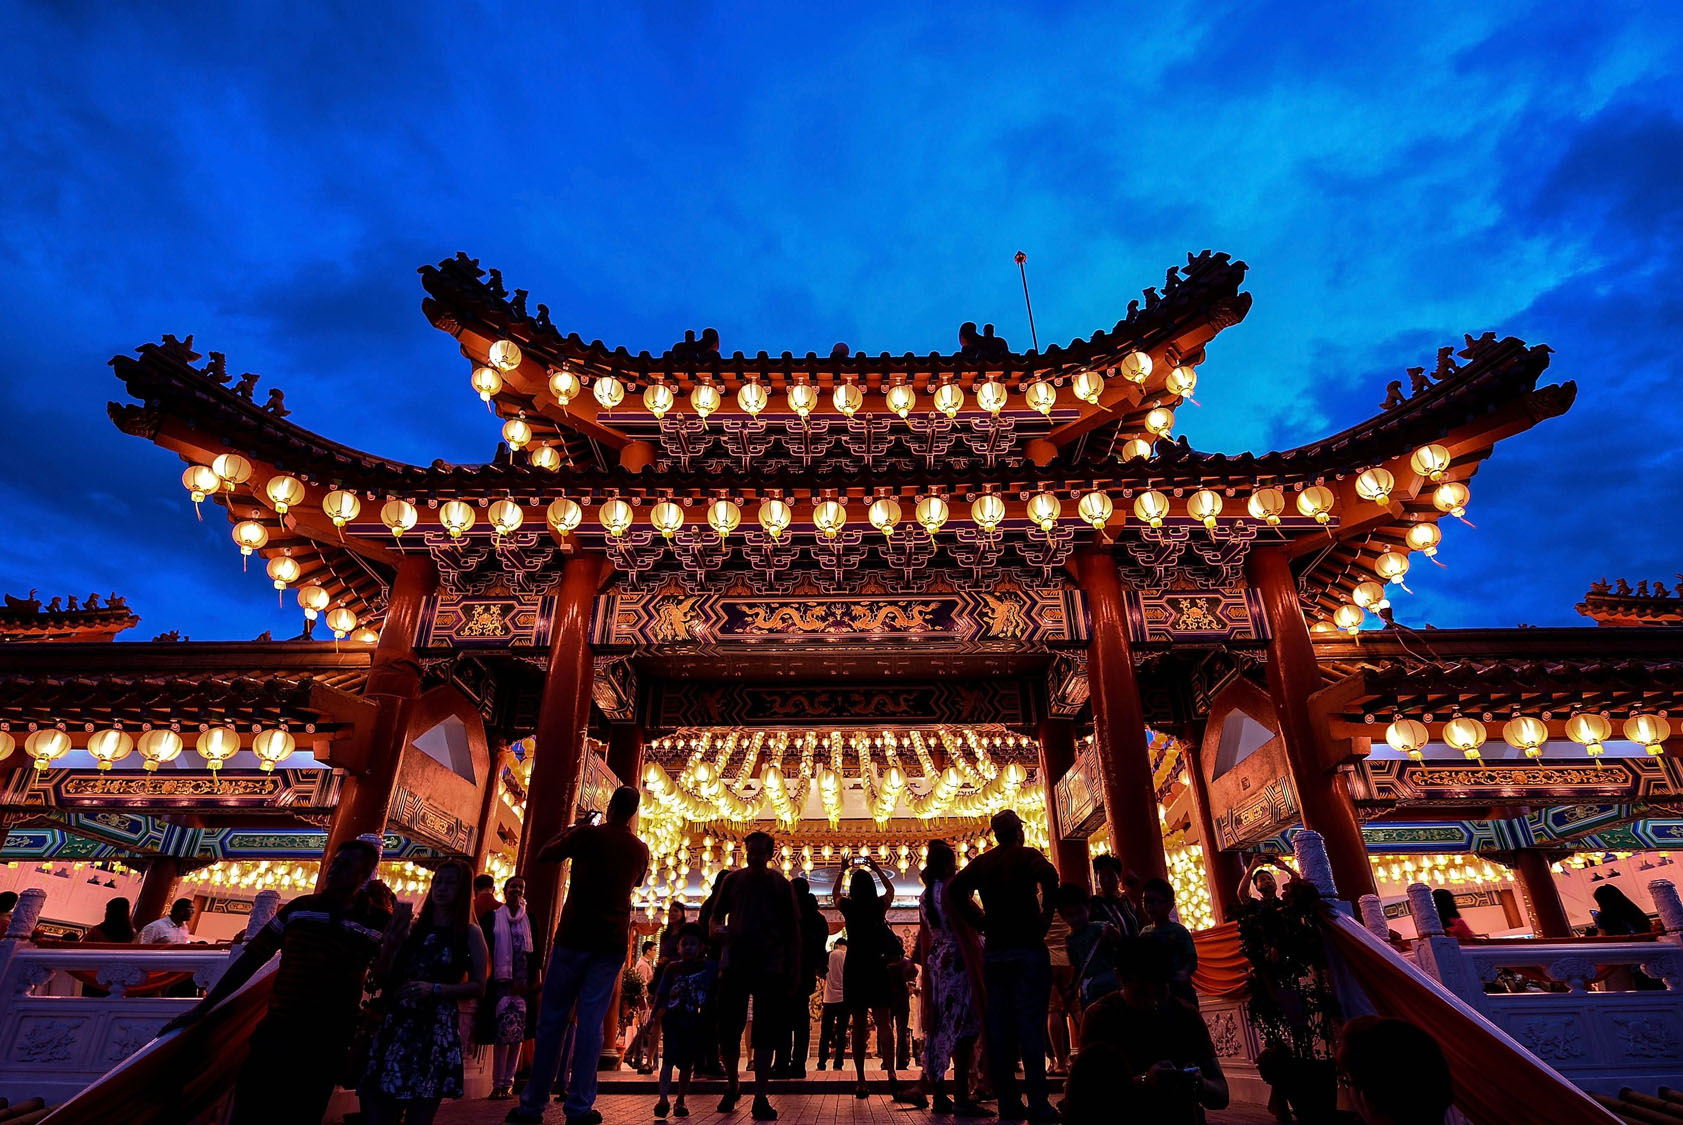 Celebrating the Lunar New Year in Malaysia